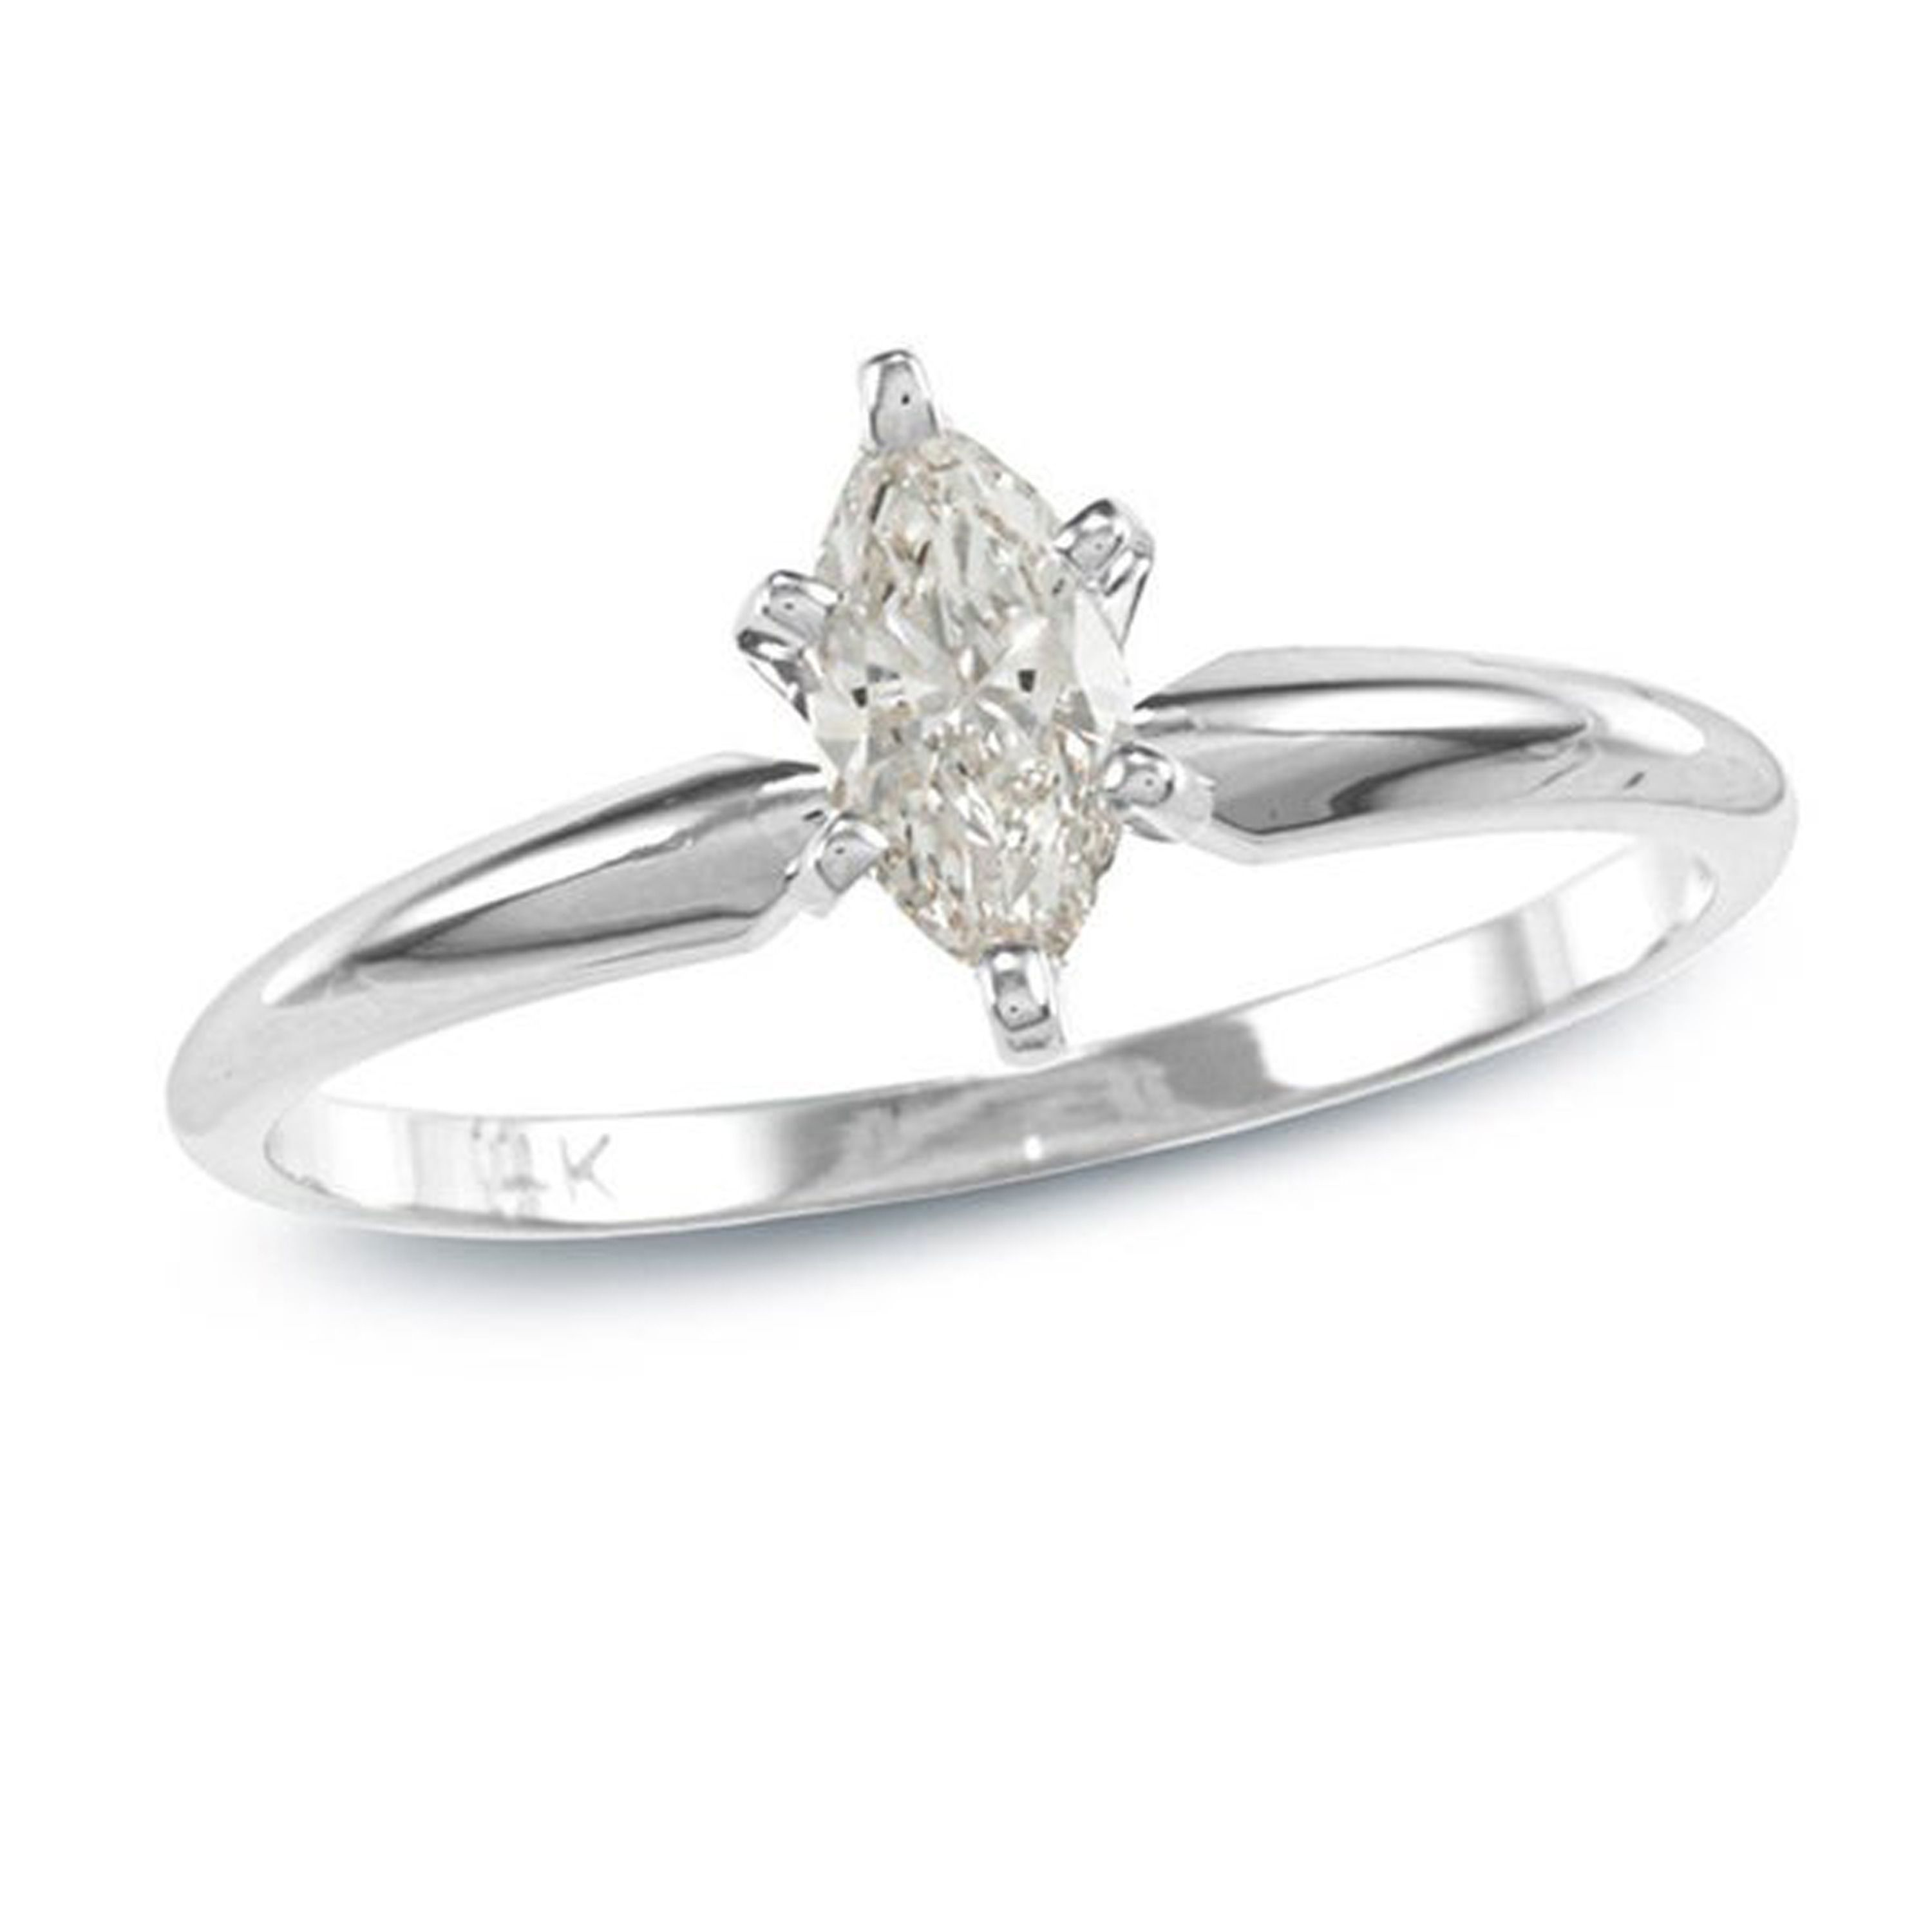 This Marquise-cut Solitaire Diamond Engagement Ring by Auriya showcases an elegant marquise diamond set in a quintessential 6-prong setting. The elongated shape gives an illusion of a greater size while accentuating the length of the finger.